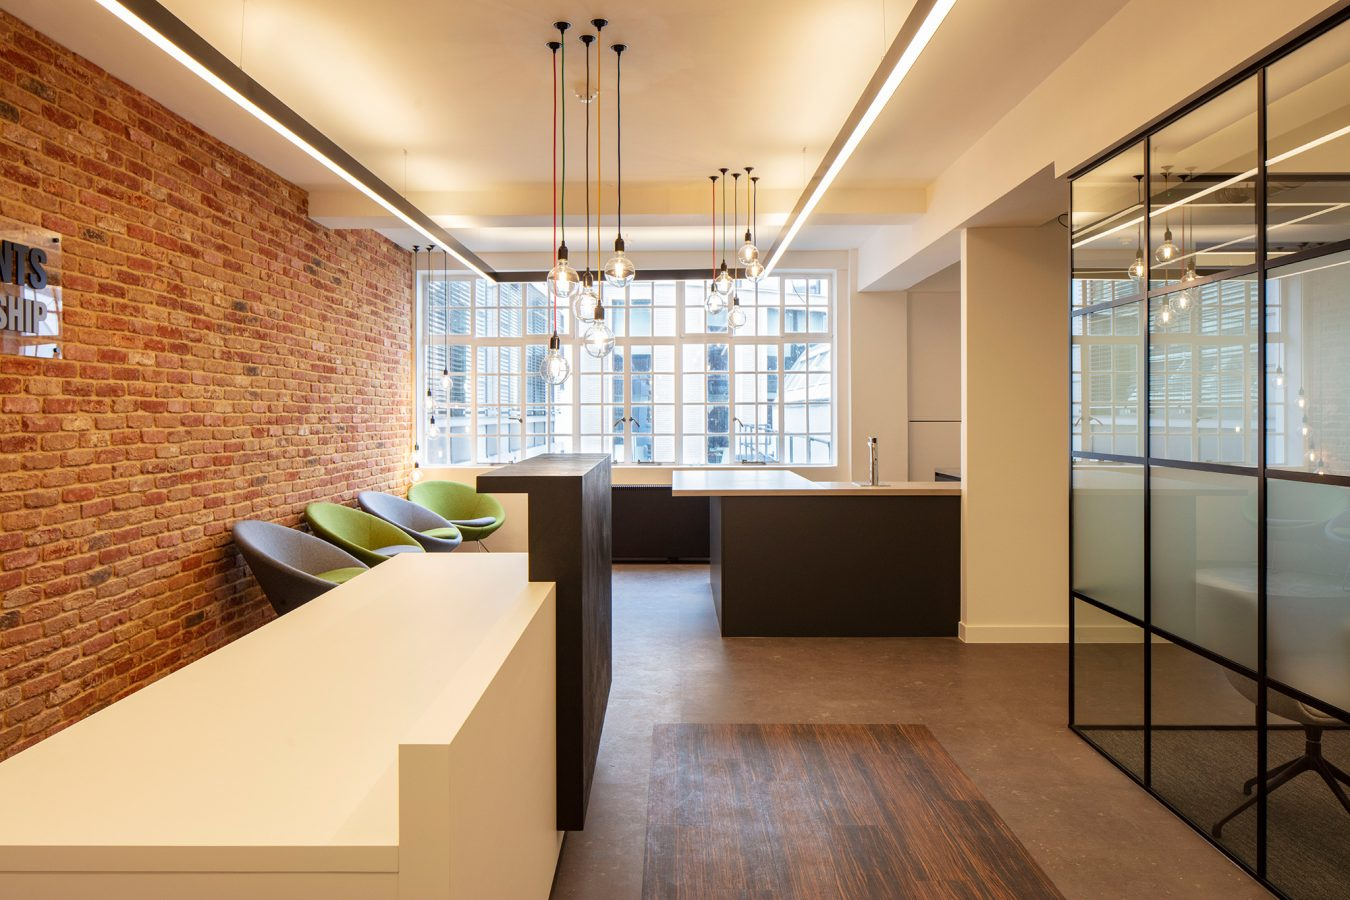 A refurbishment project including the reception area for office relocation, decorated with feature wall and pendant retro lights and crittal style glazed partitions for space optimisation. in Westminster City